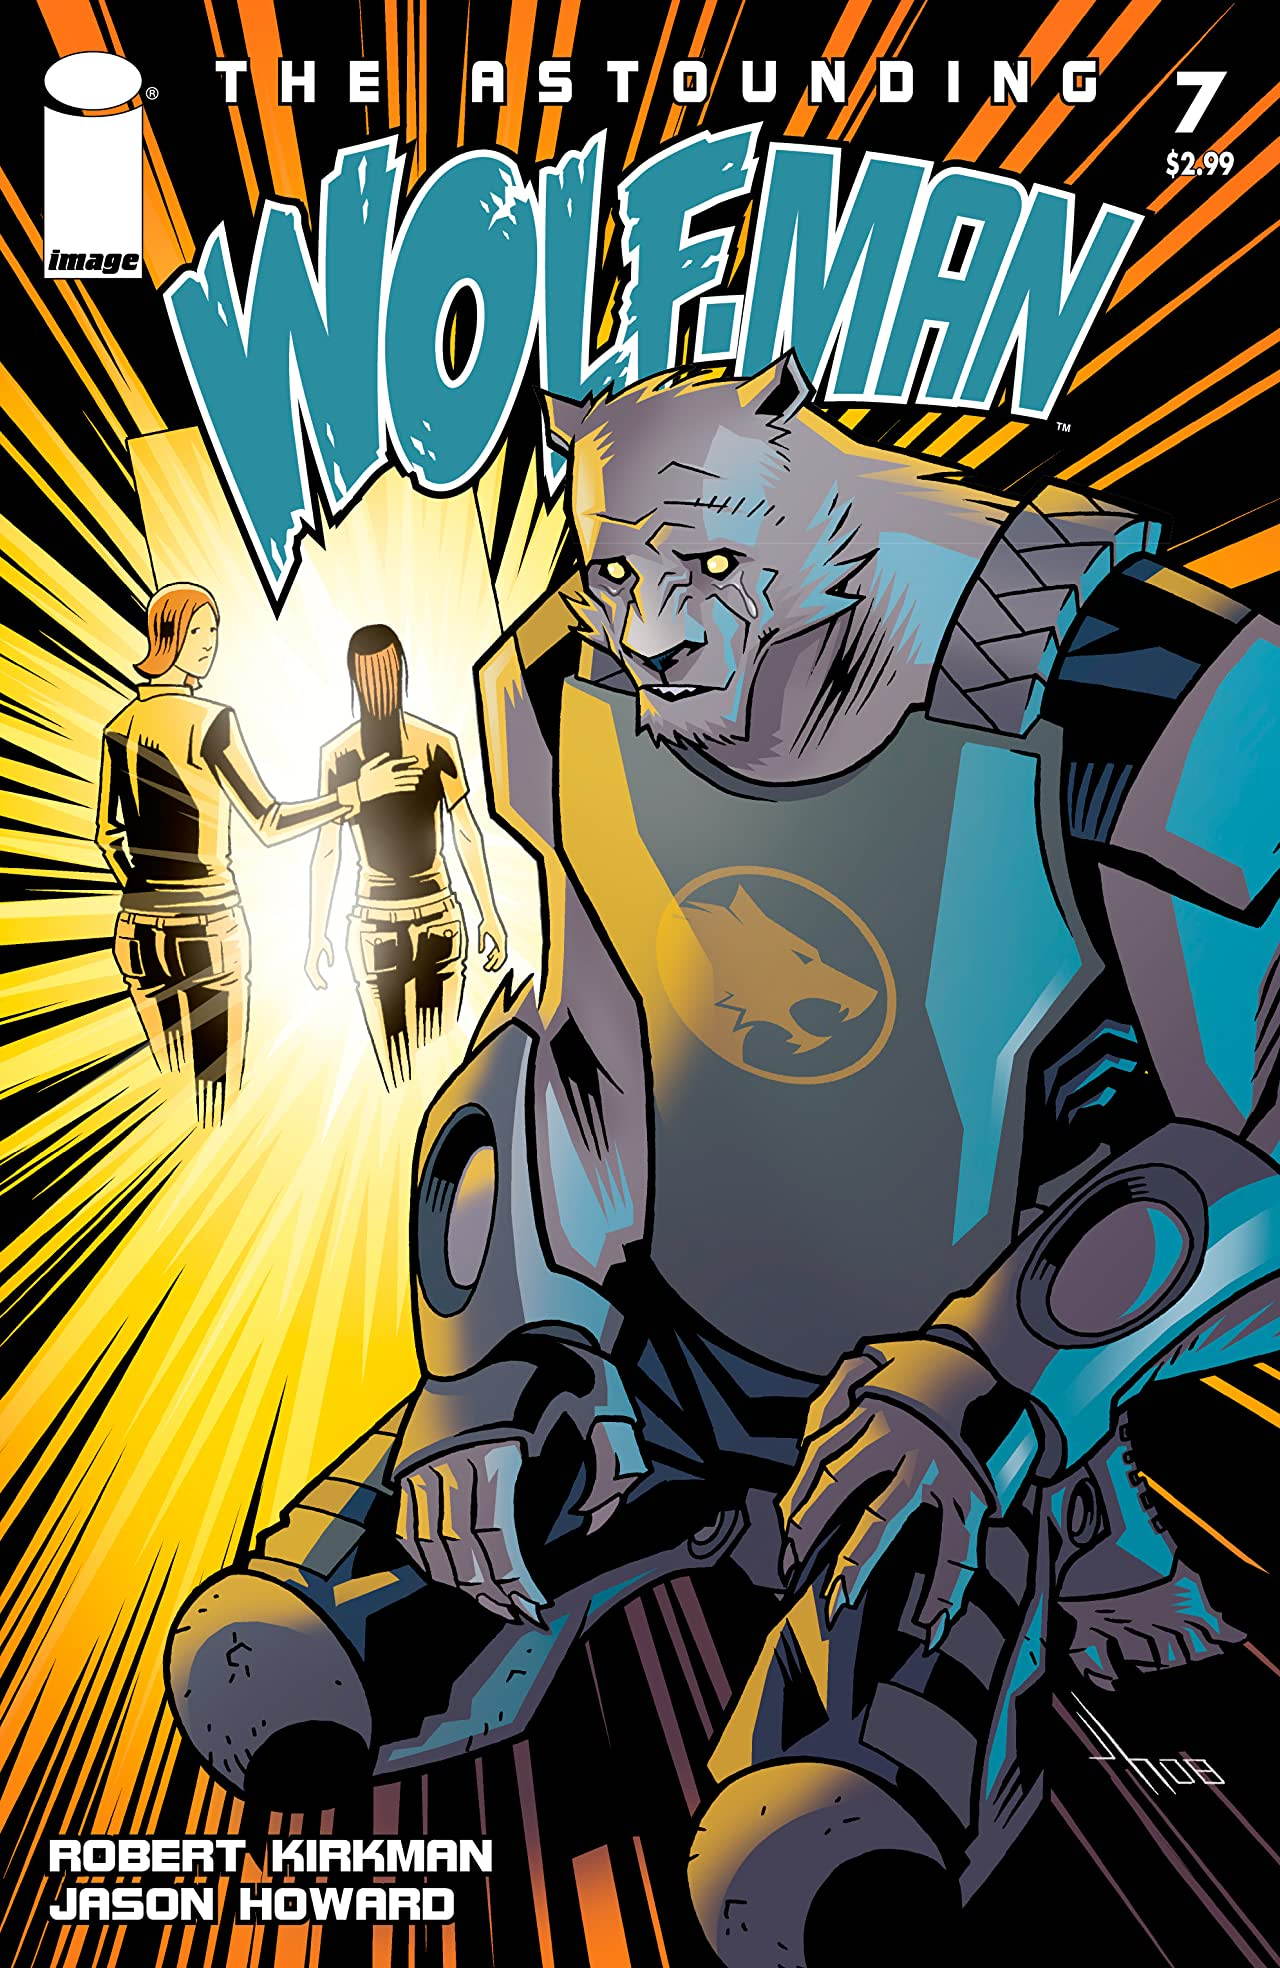 The Astounding Wolf-Man #7